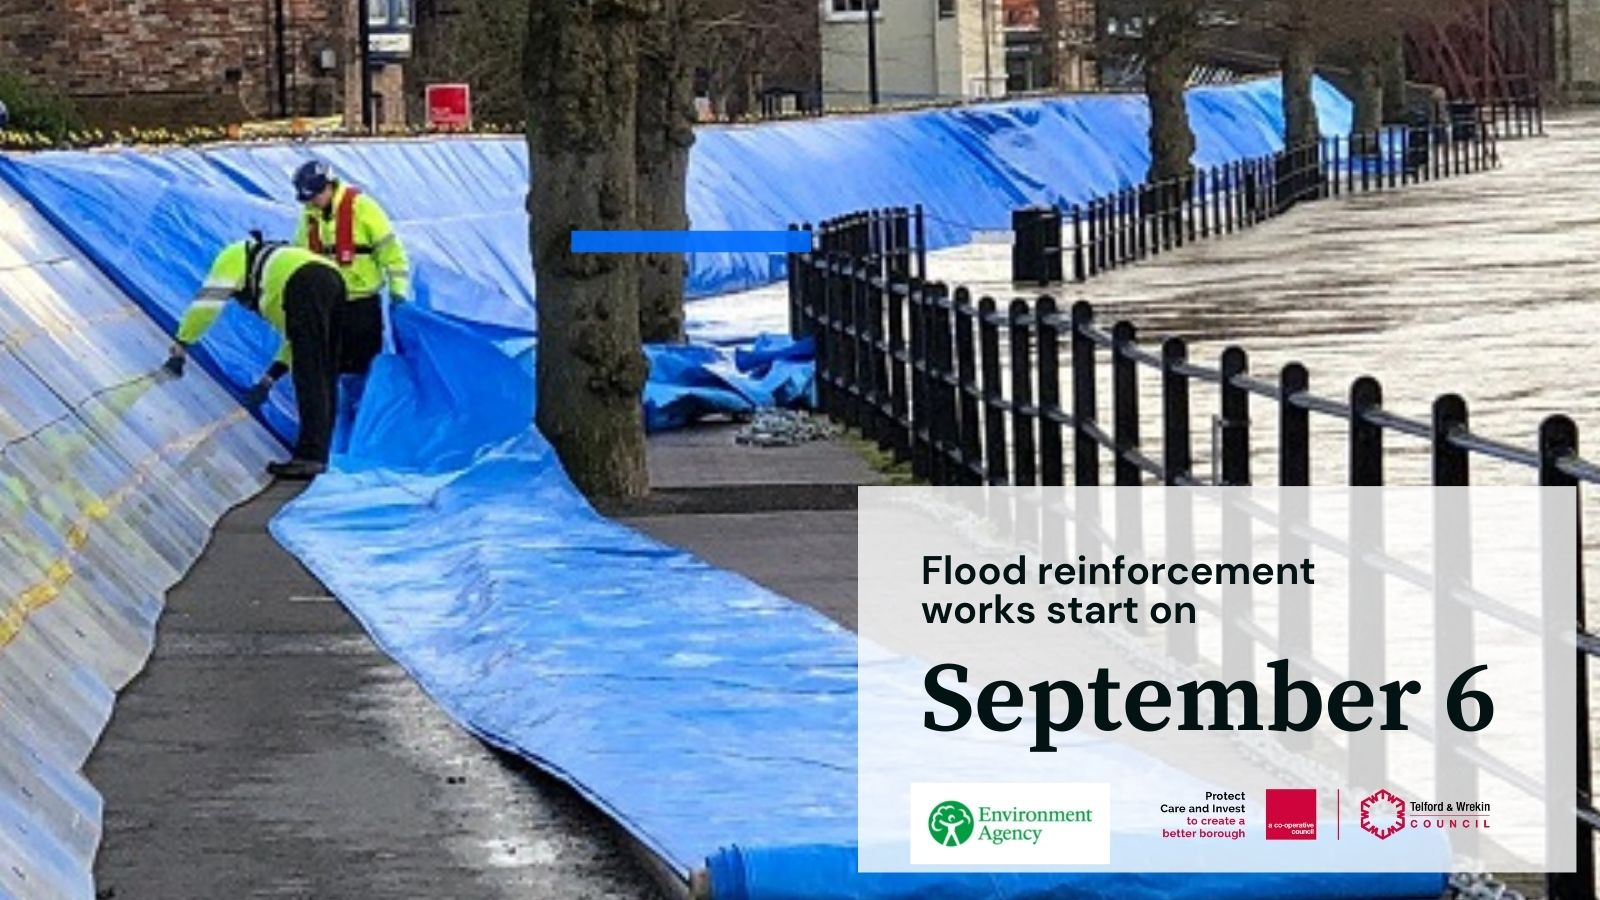 Wharfage Flood Improvements, Planned for September